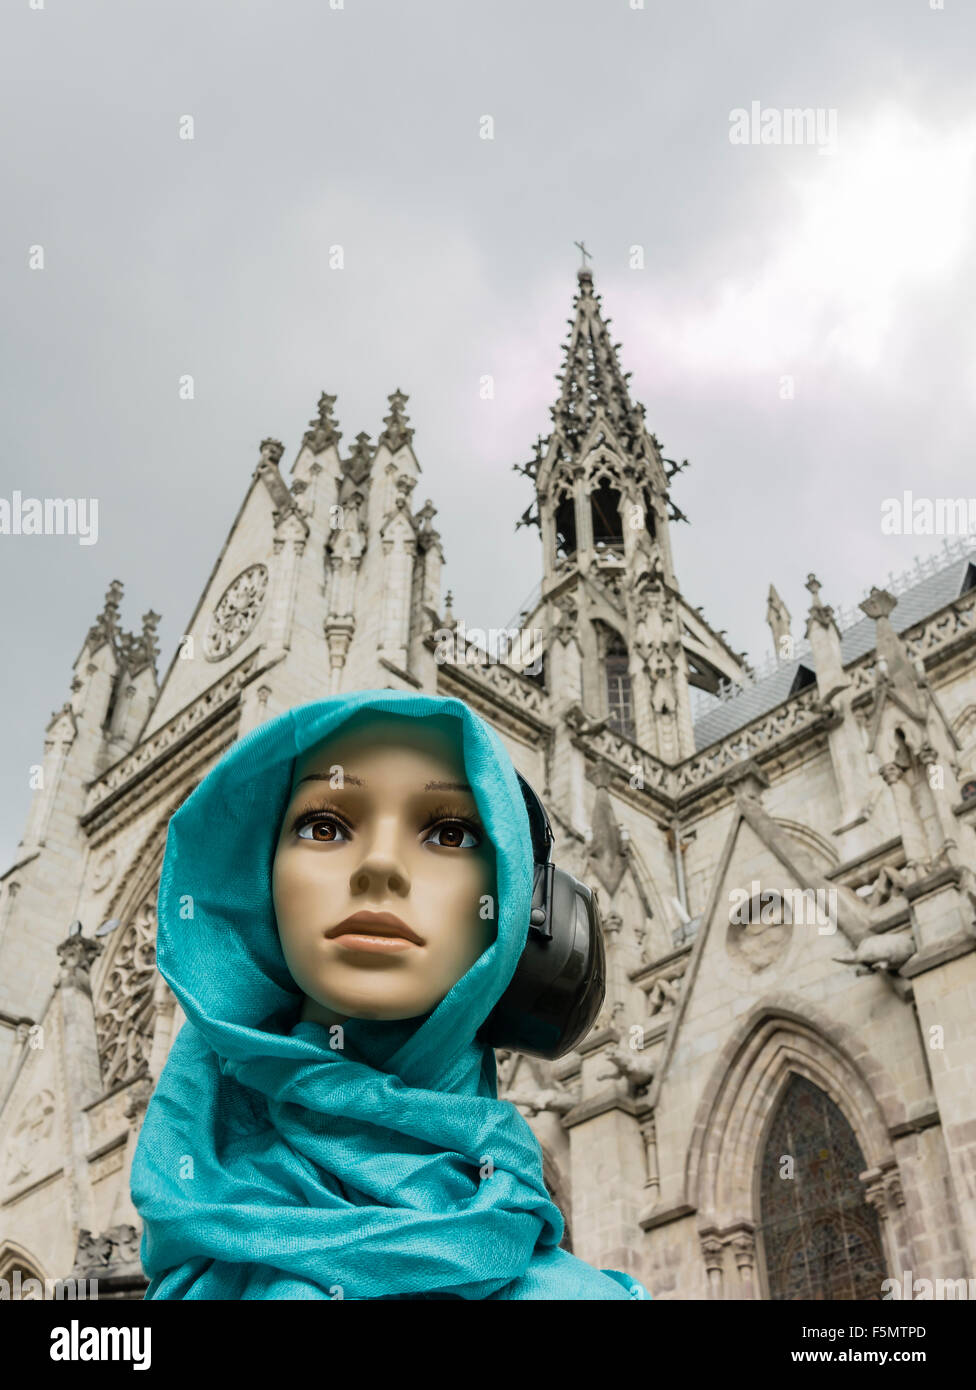 Genara listening to music, indifferent, to the splendid tower of the Basilica of the National Vow. Quito, Ecuador. - Stock Image